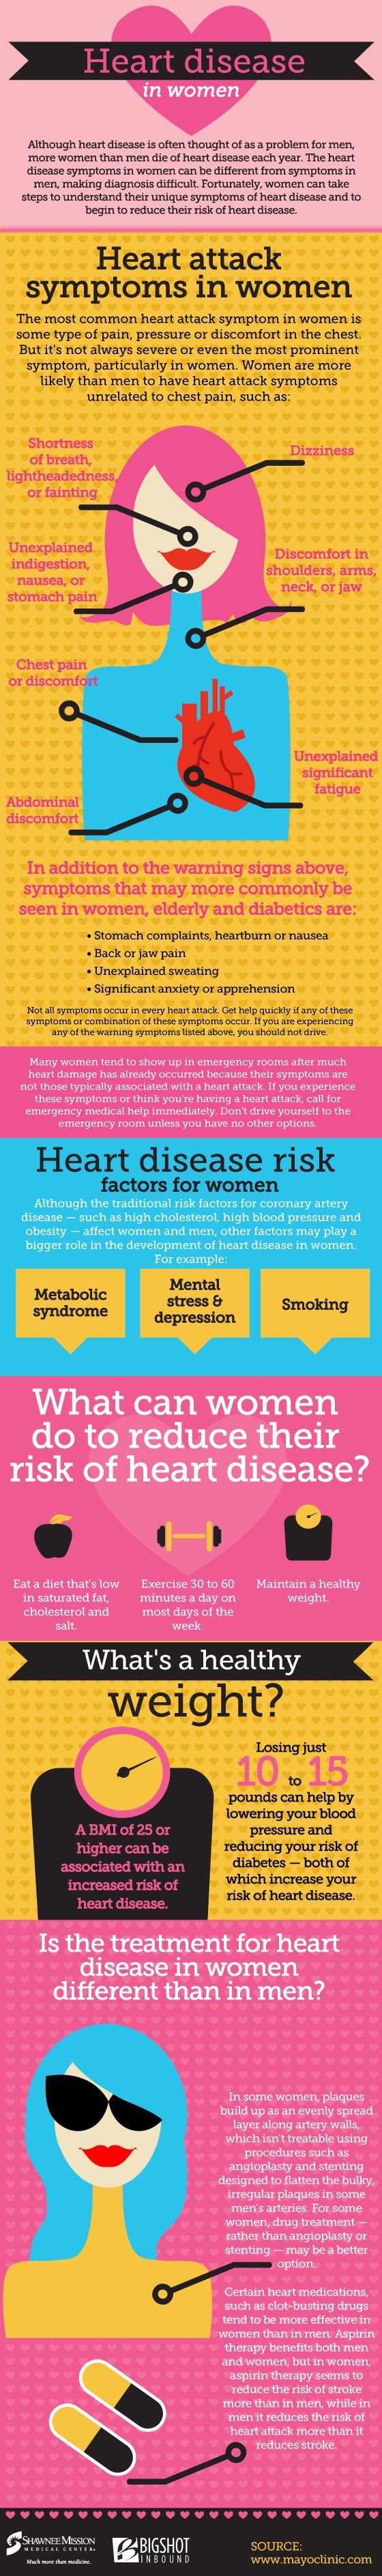 Take a look at this infographic to learn more about what women can do to prevent heart disease, as well as how to learn to recognize the symptoms, risk factors,and treatments for the condition. #women #womenshealth #heartattack #heartdisease #health  #sydneycbdmedicalpractice #bookmedicaldoctorssydney #cbdmedicalcentre